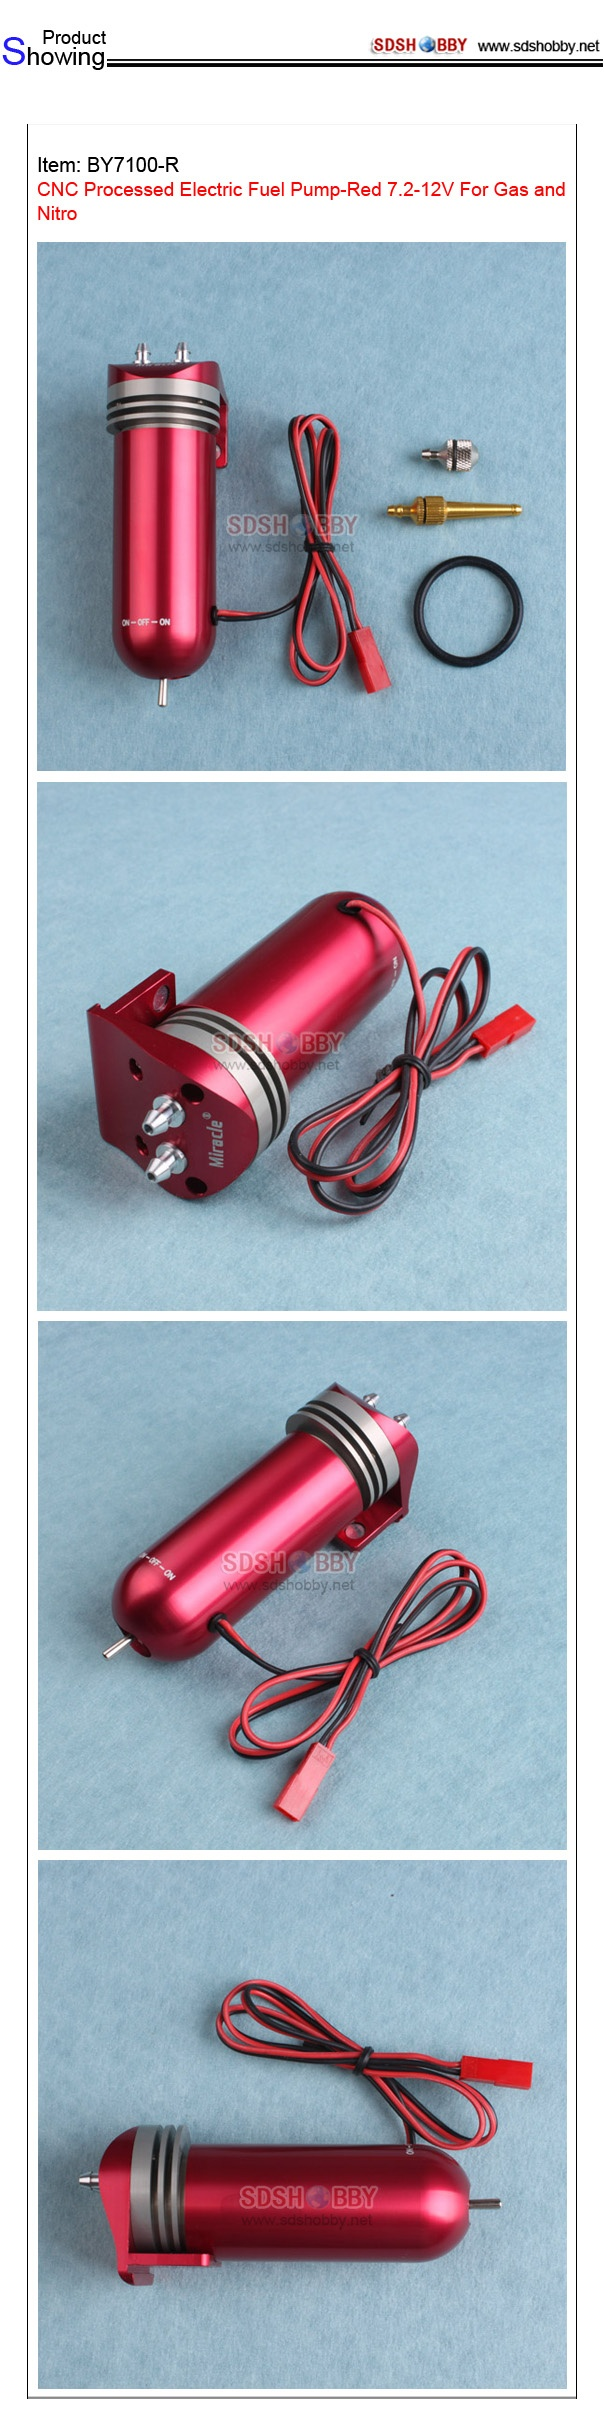 CNC Processed Electric Fuel Pump-Red 7.2-12V For Gas and Nitro